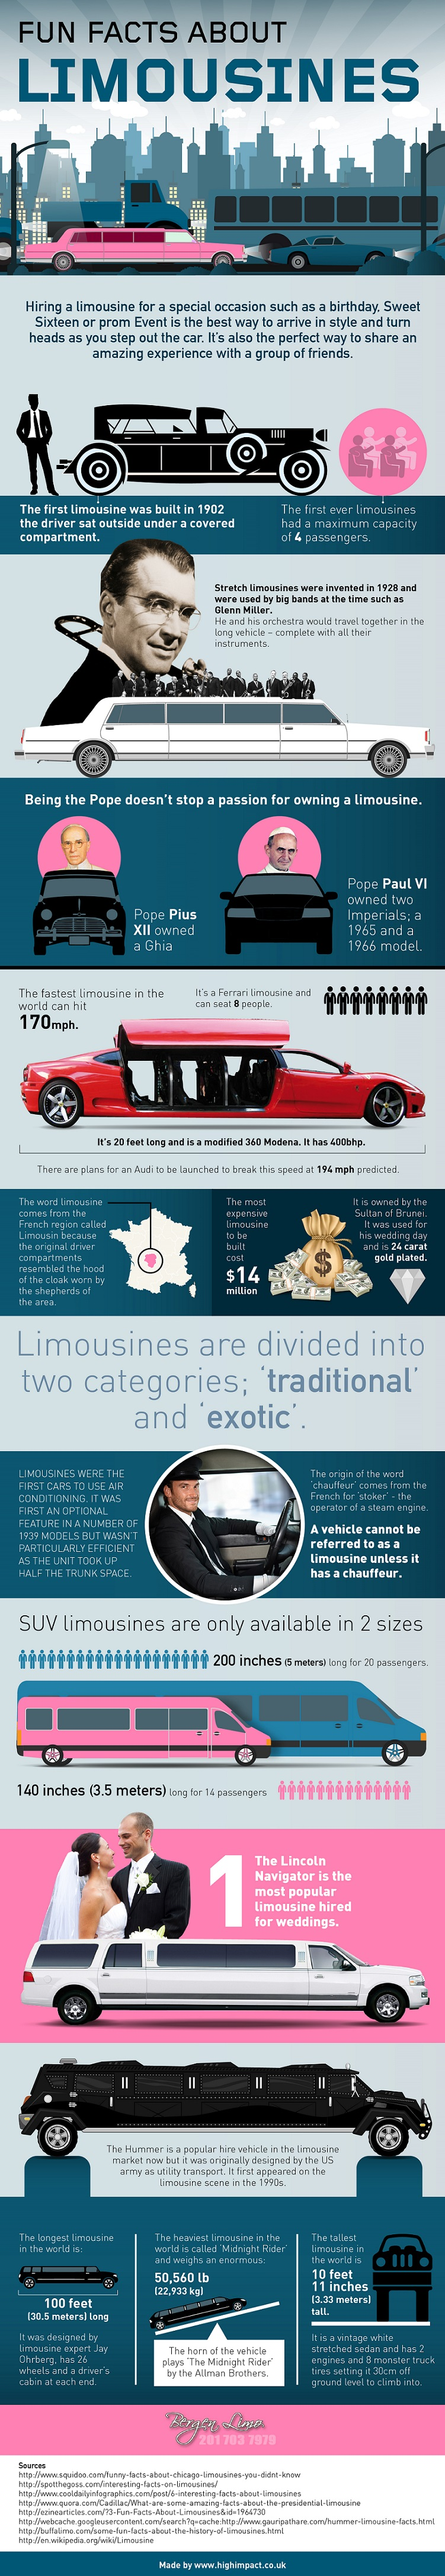 Fun Facts About Limousines Infographic